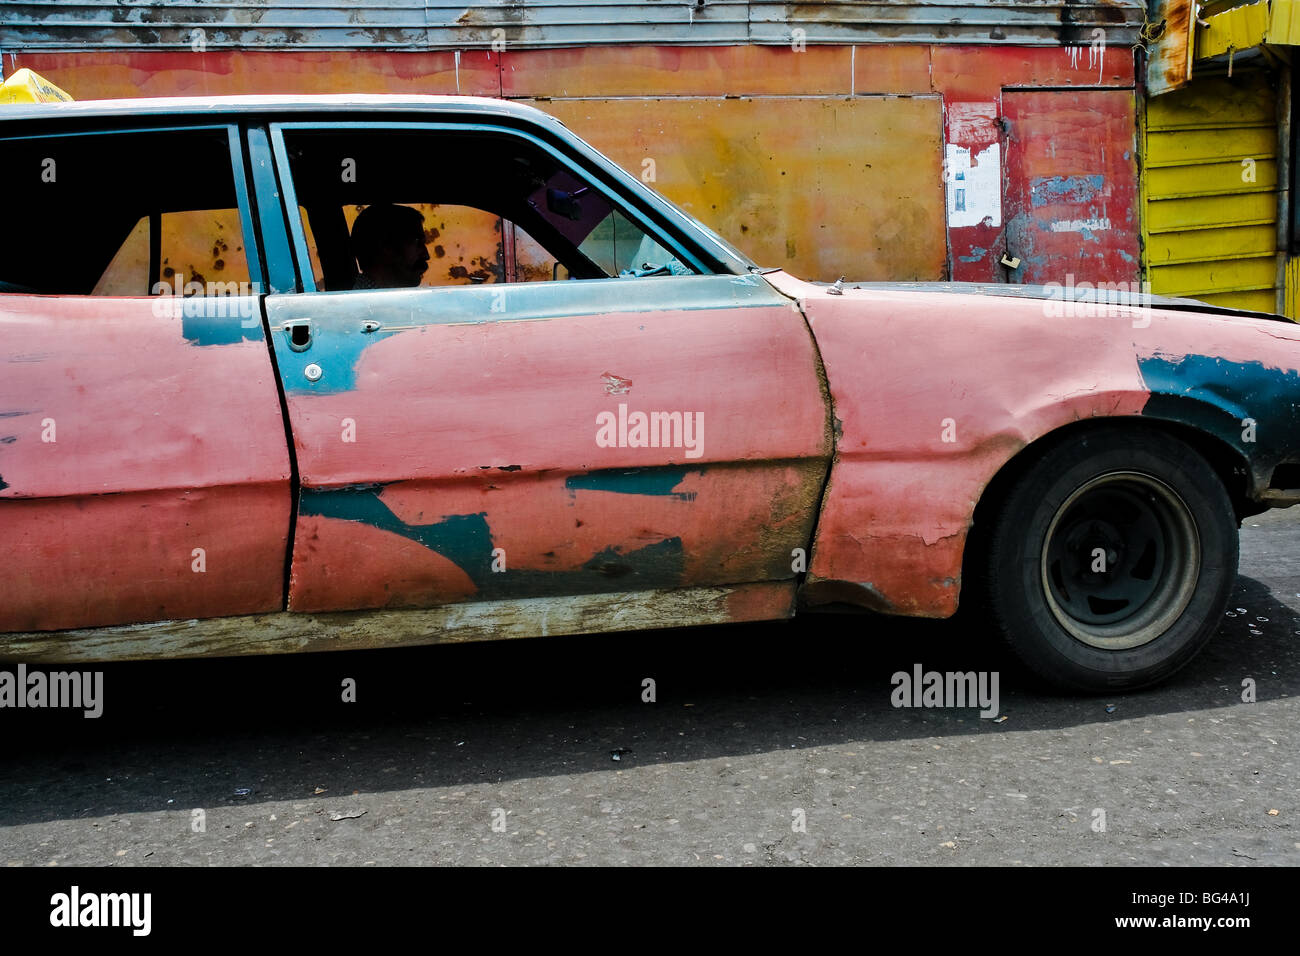 A rusty and damaged American classic car from 1970s, used as a ...